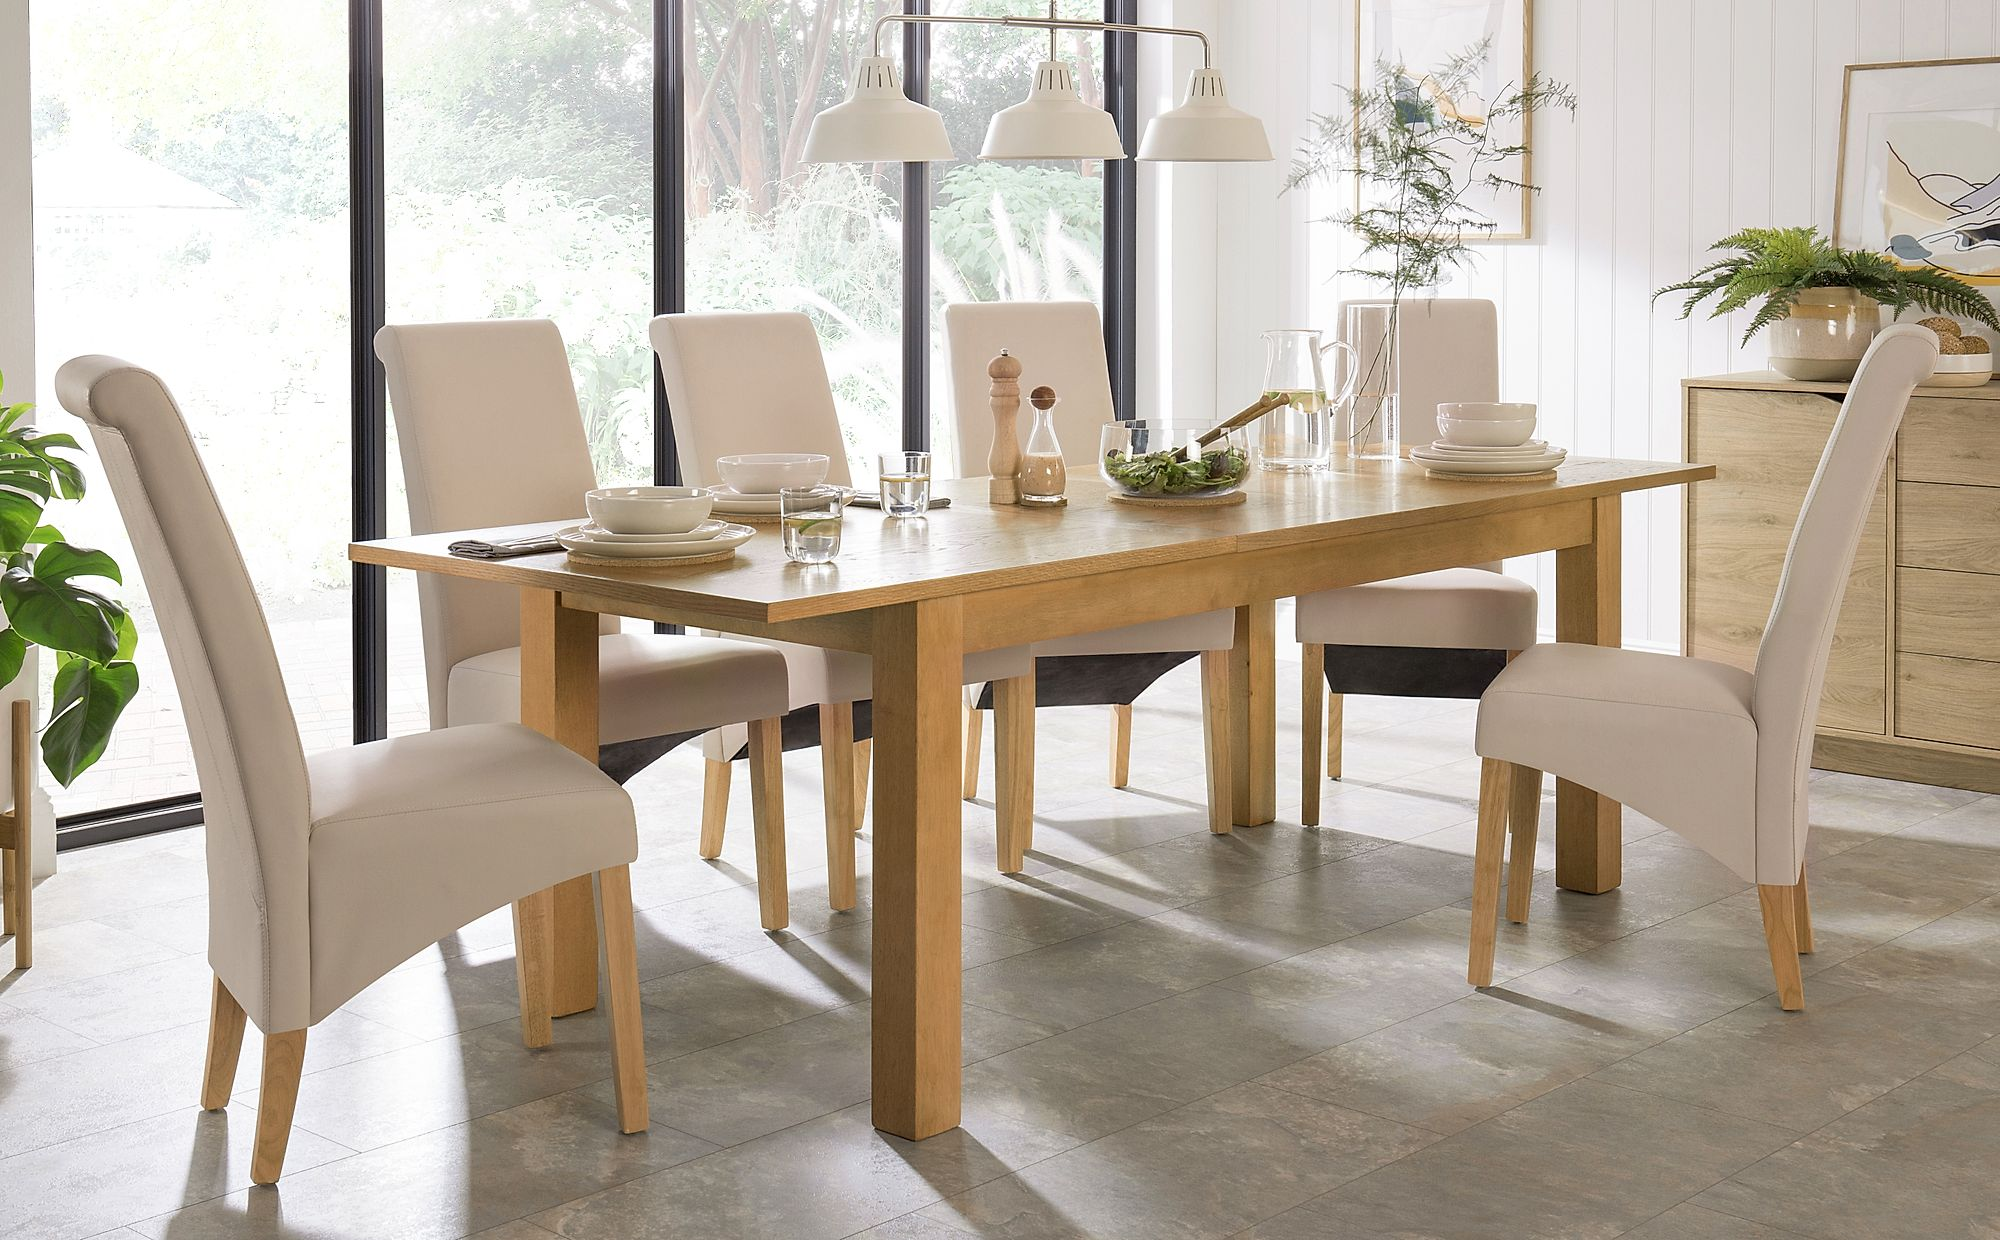 Gallery Hamilton 180 230cm Oak Extending Dining Table With 8 Richmond Cream Chairs